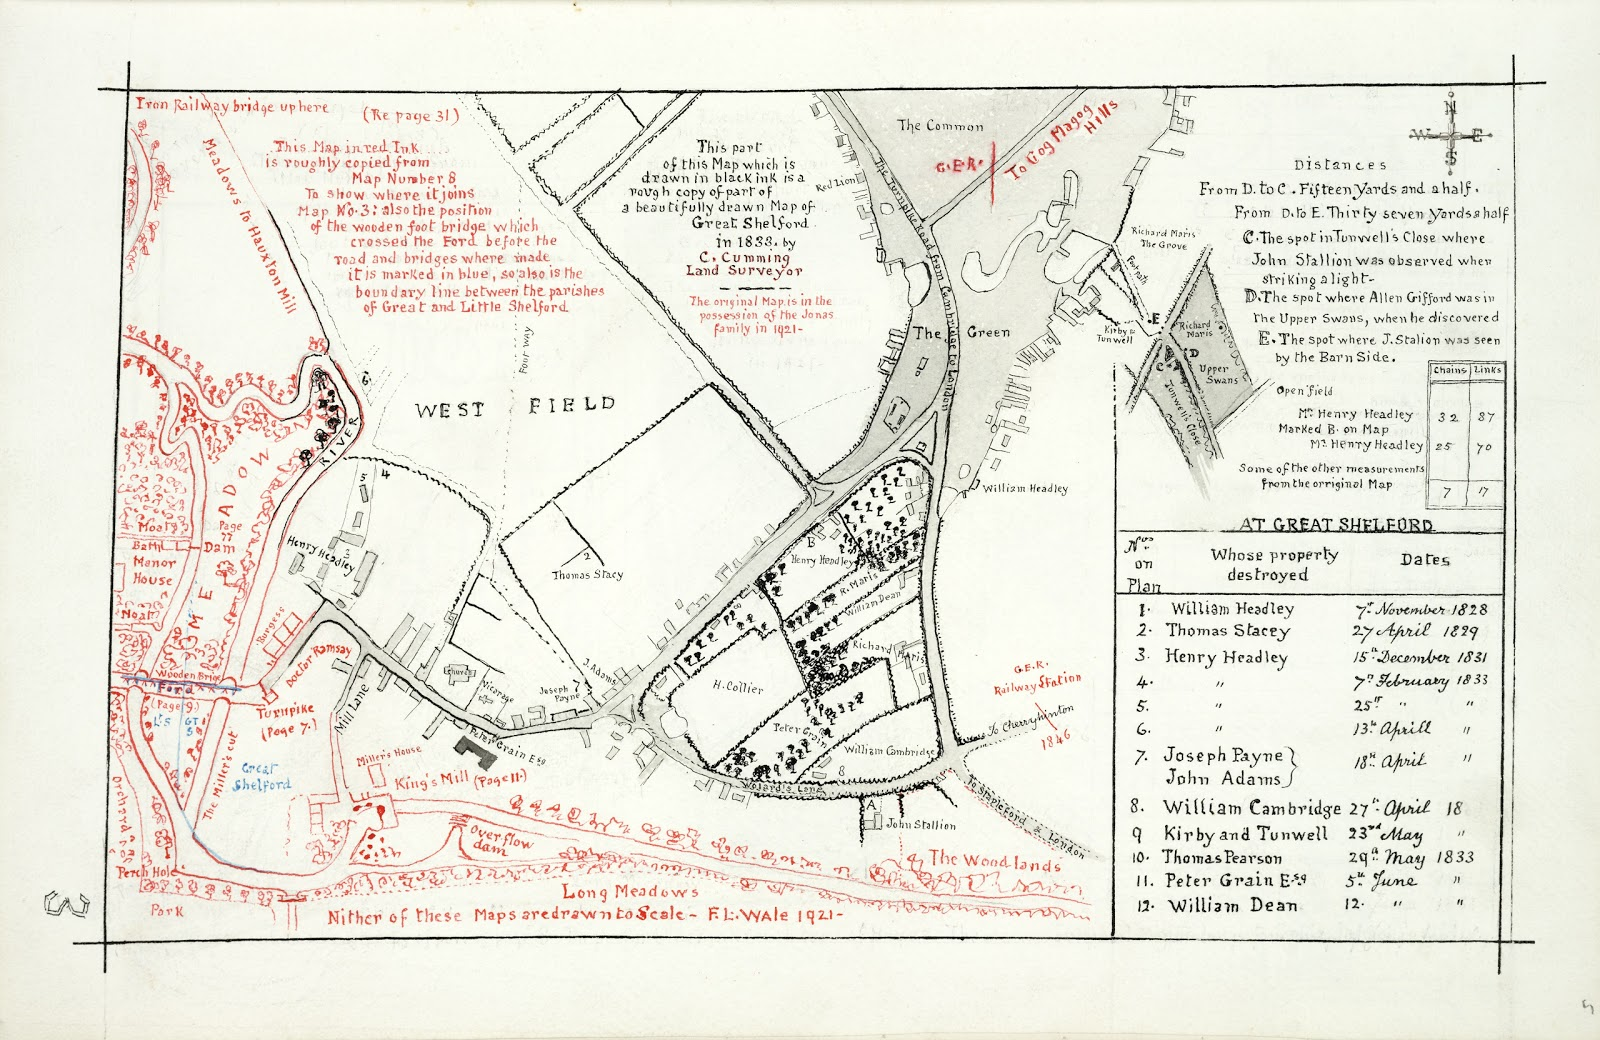 A Record of Shelford Parva by Fanny Wale P3 fo. 5, page 3: A full page map of Great Shelford, half of which is drawn in black, half in red. The black side is a rough copy of a map drawn in 1833, the red side is a rough copy of a previous map to show where it joins up, with lists of reference and list of fires. The maps are not drawn to scale. [R105/081, fo. 3 is a photograph of a different map, apparently the professionally drawn map of 1833, including the list of fires, on which Fanny Wale's drawn copy in black ink is based, but with added notes to it]